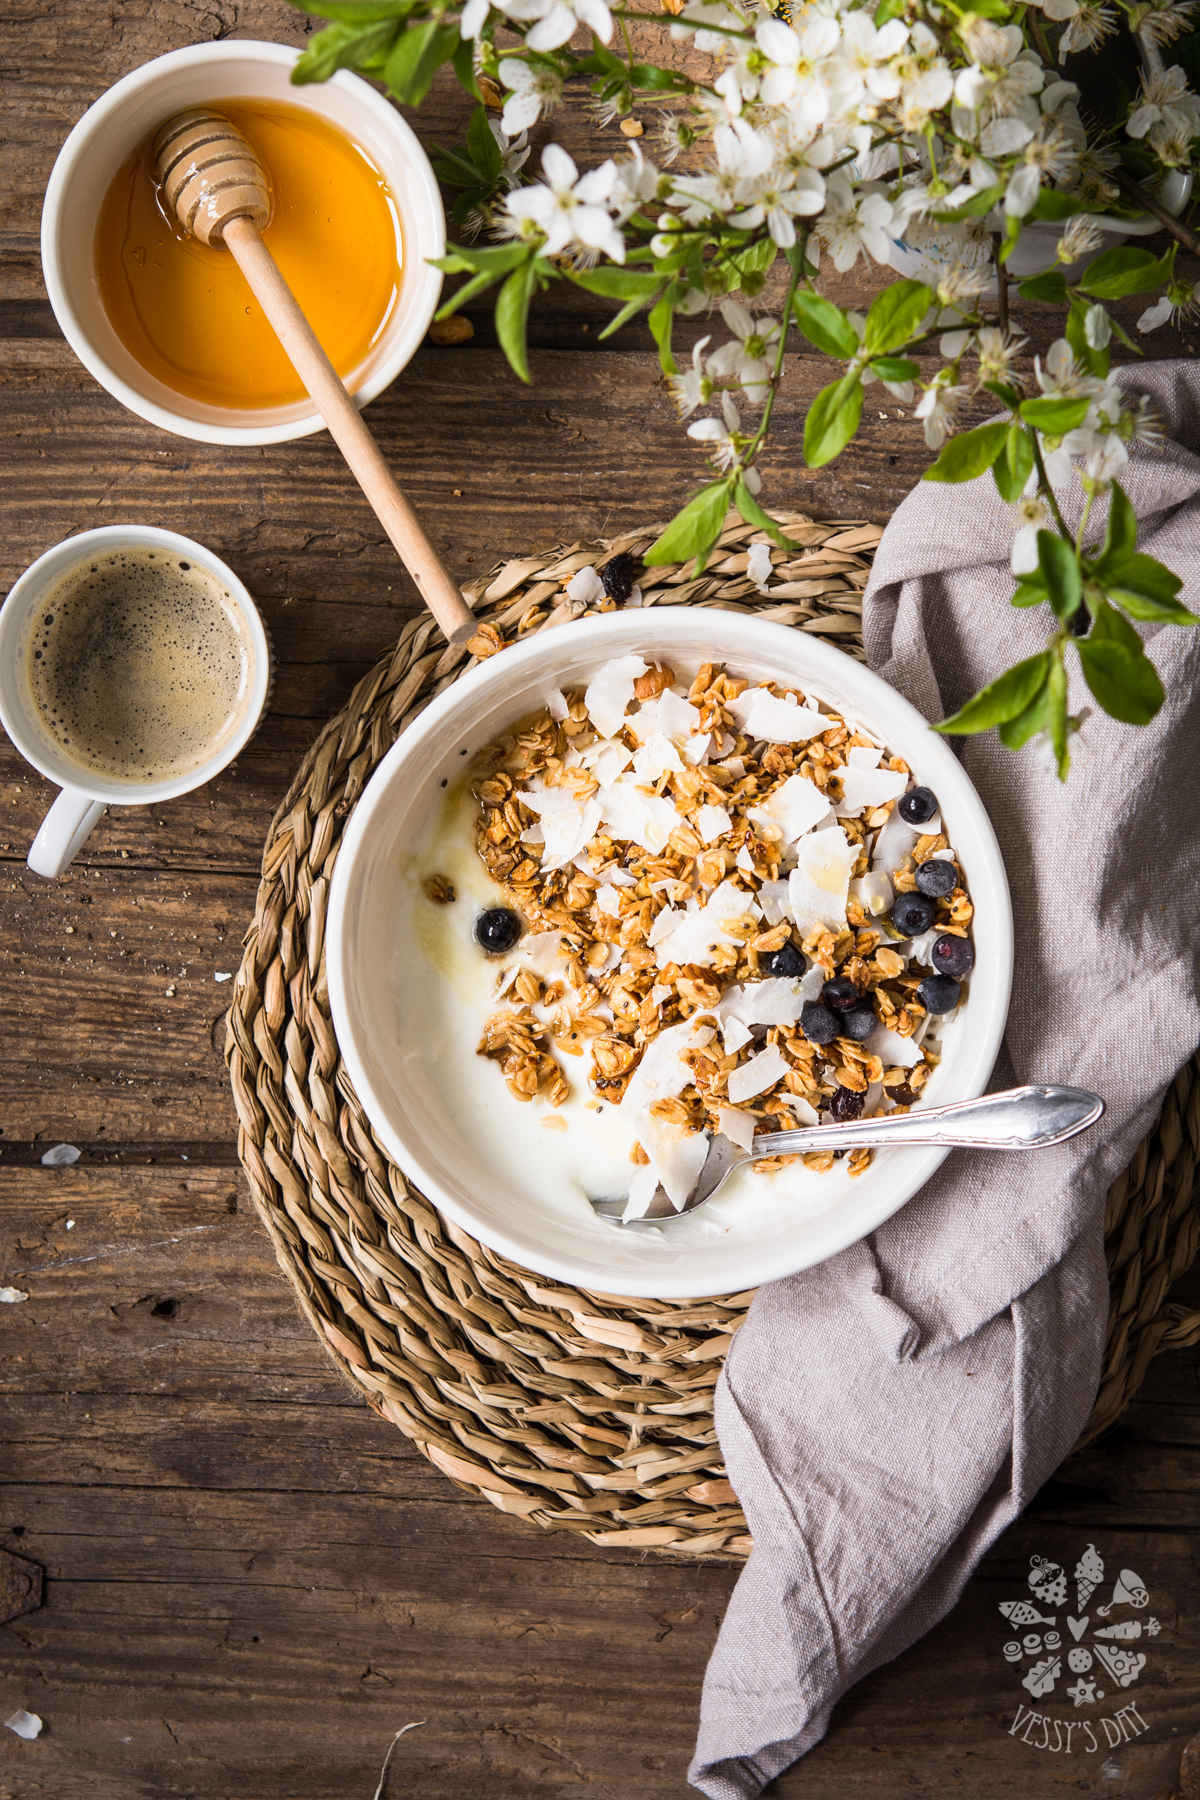 Homemade coconut & blueberry granola